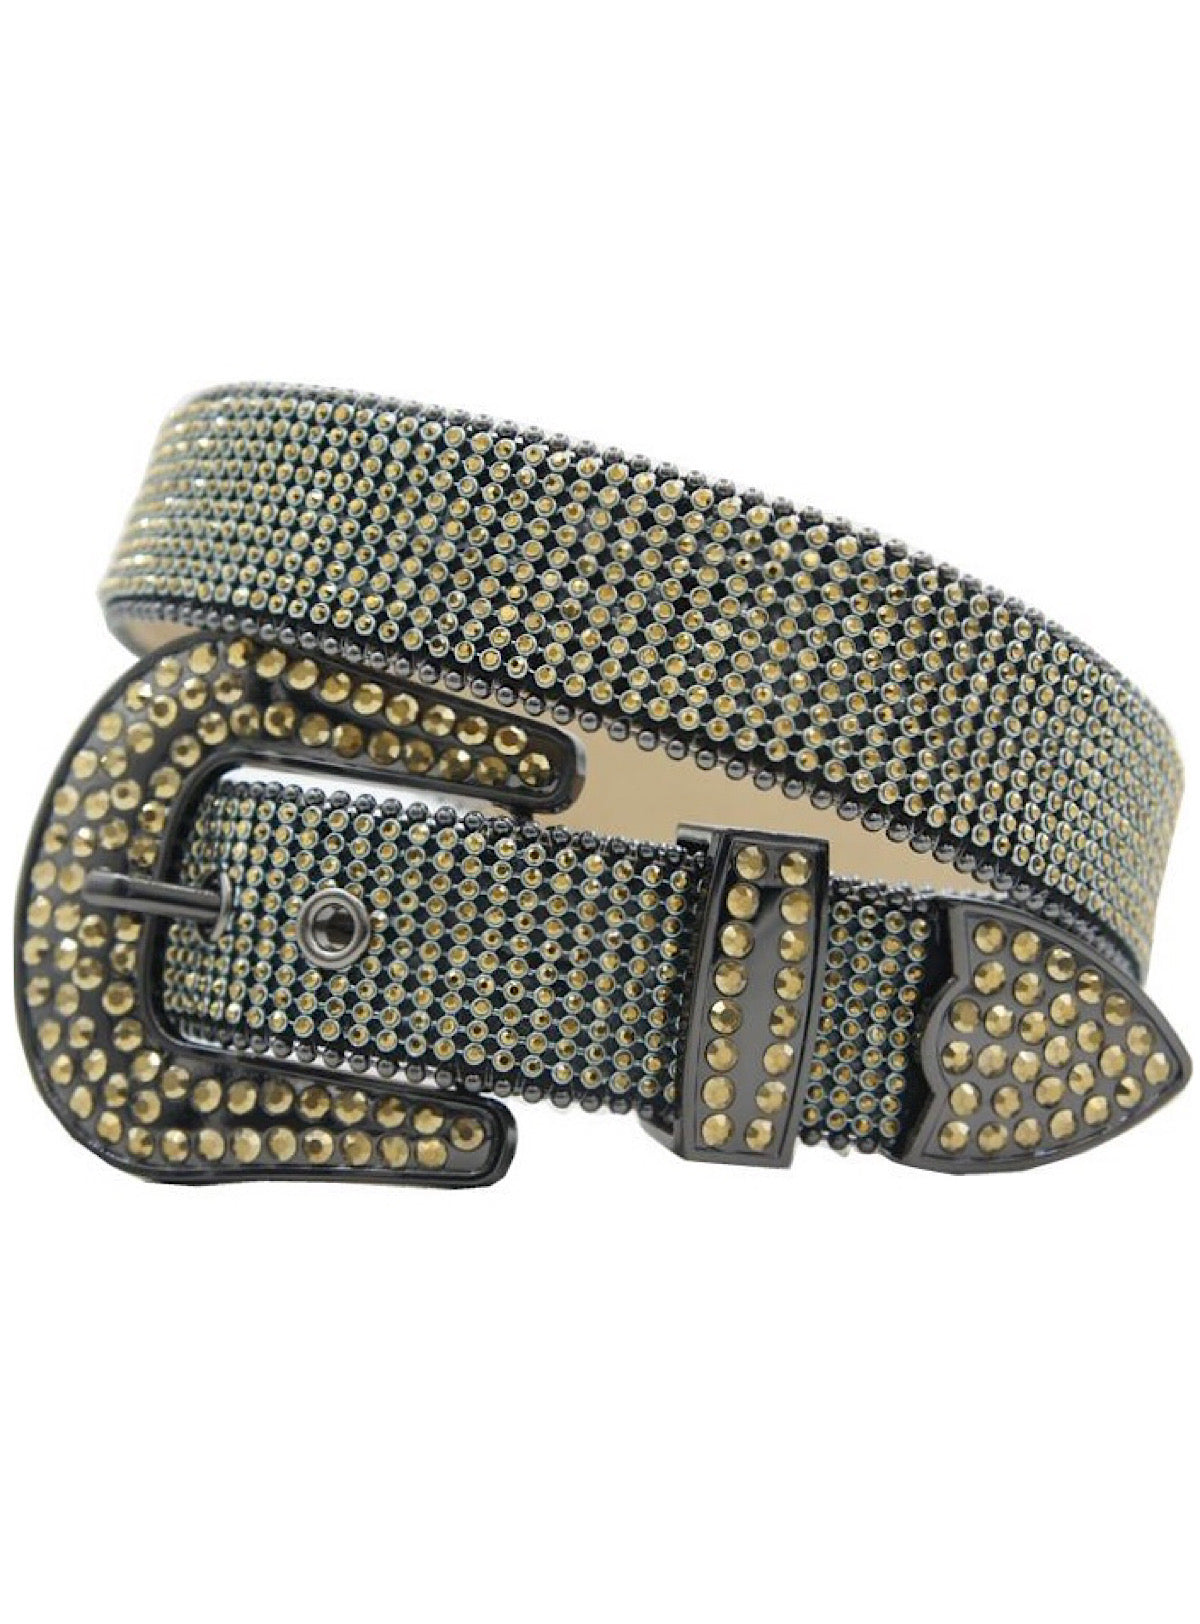 DNA Belt - Small Stones - Gold